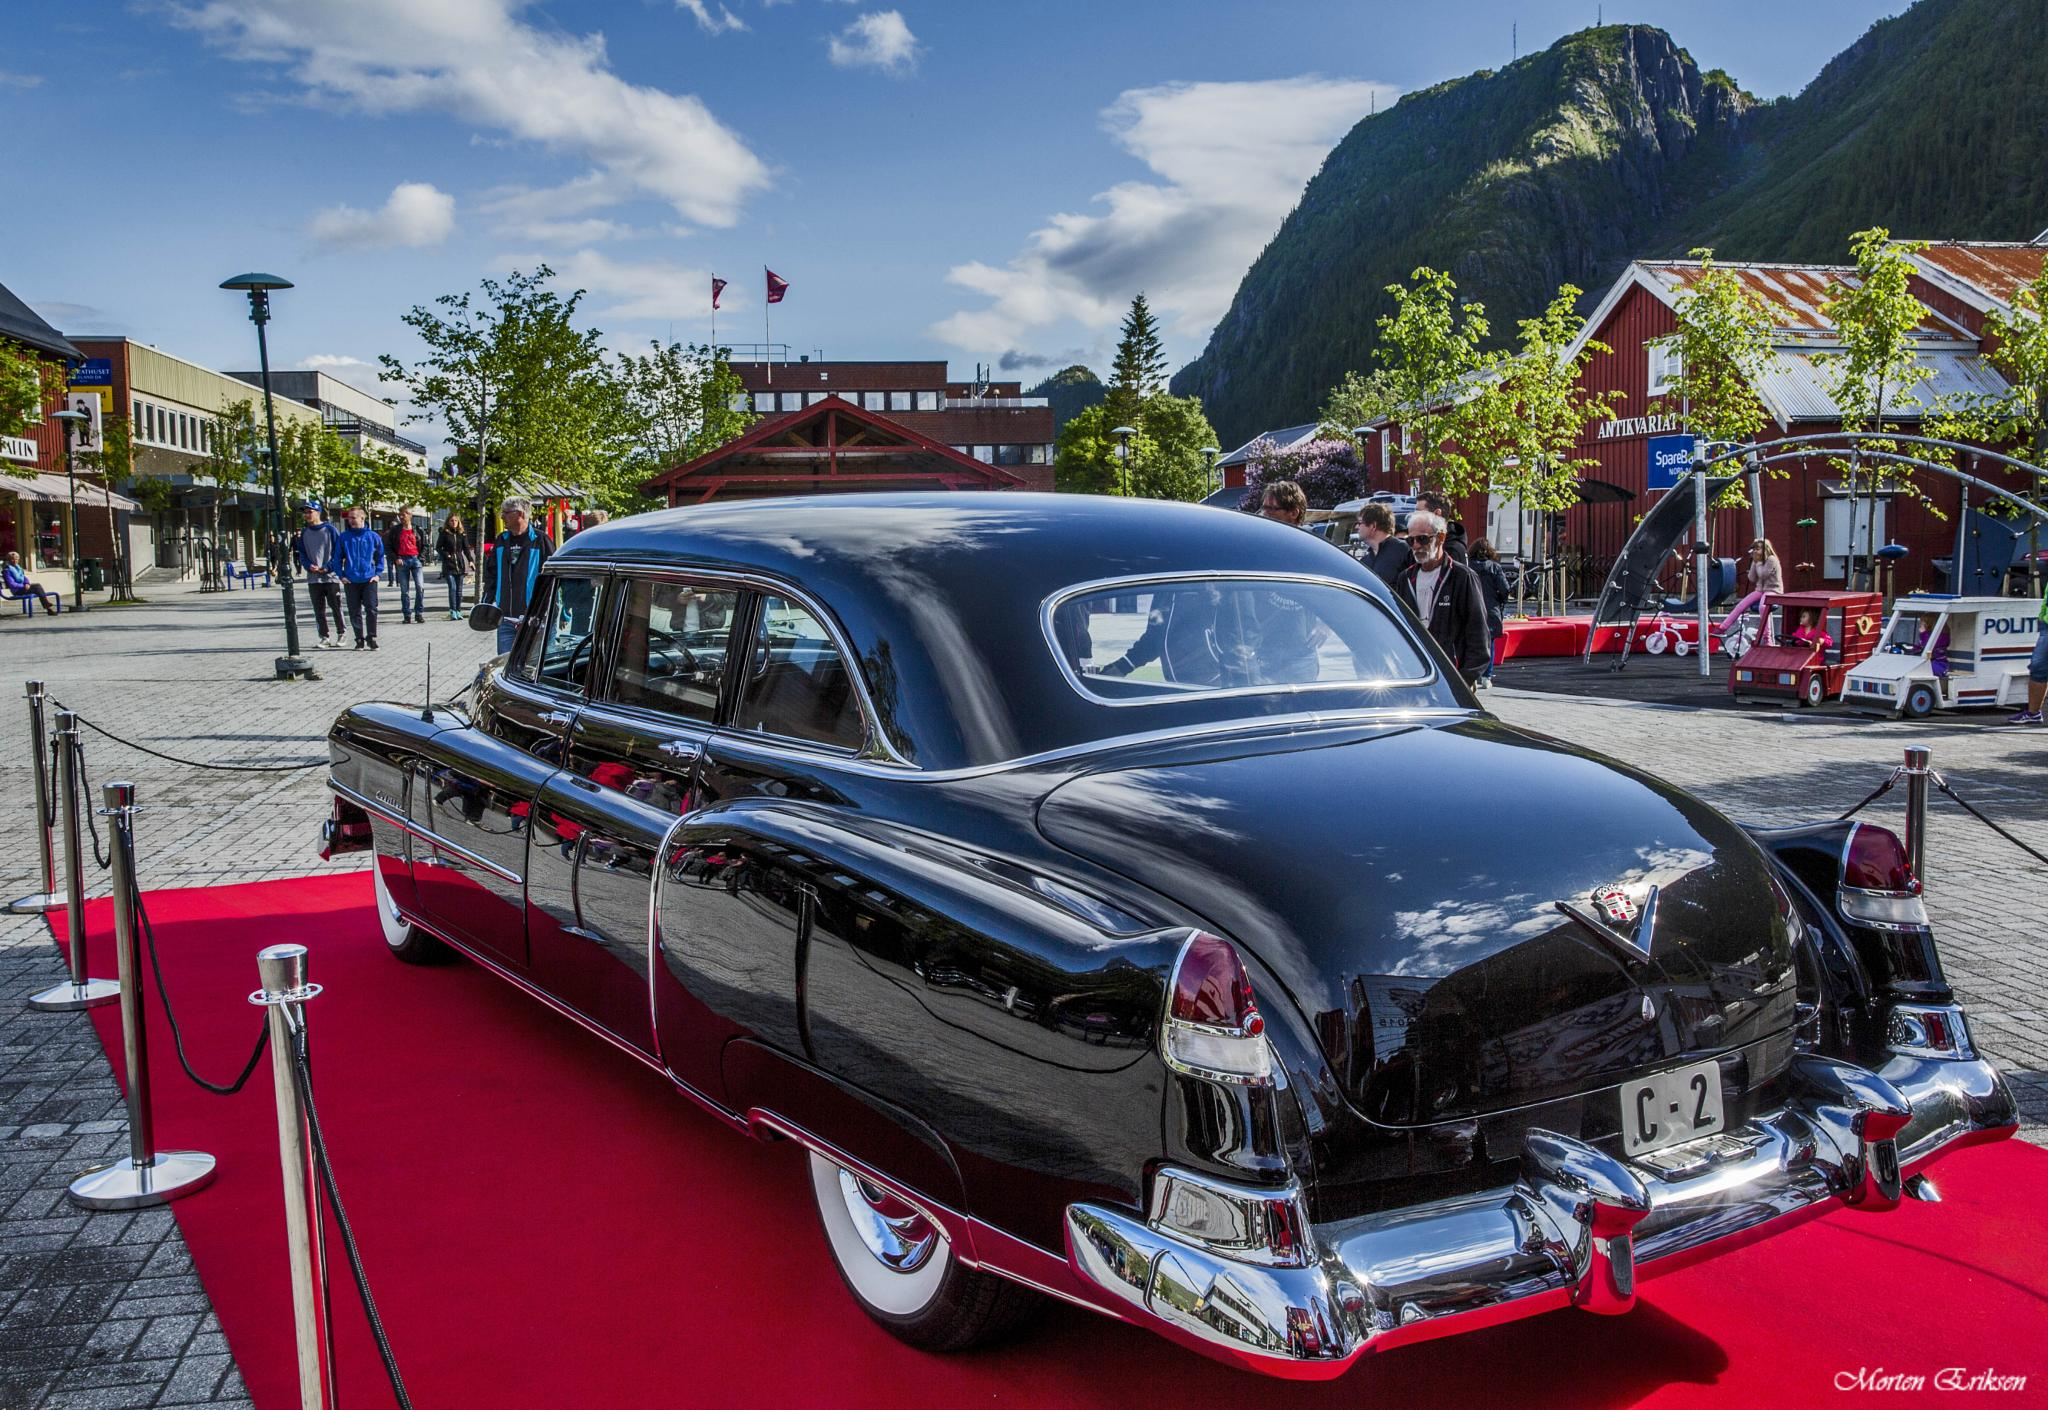 Caddilac -51, once owned by King Olav, Norway by Morten Eriksen